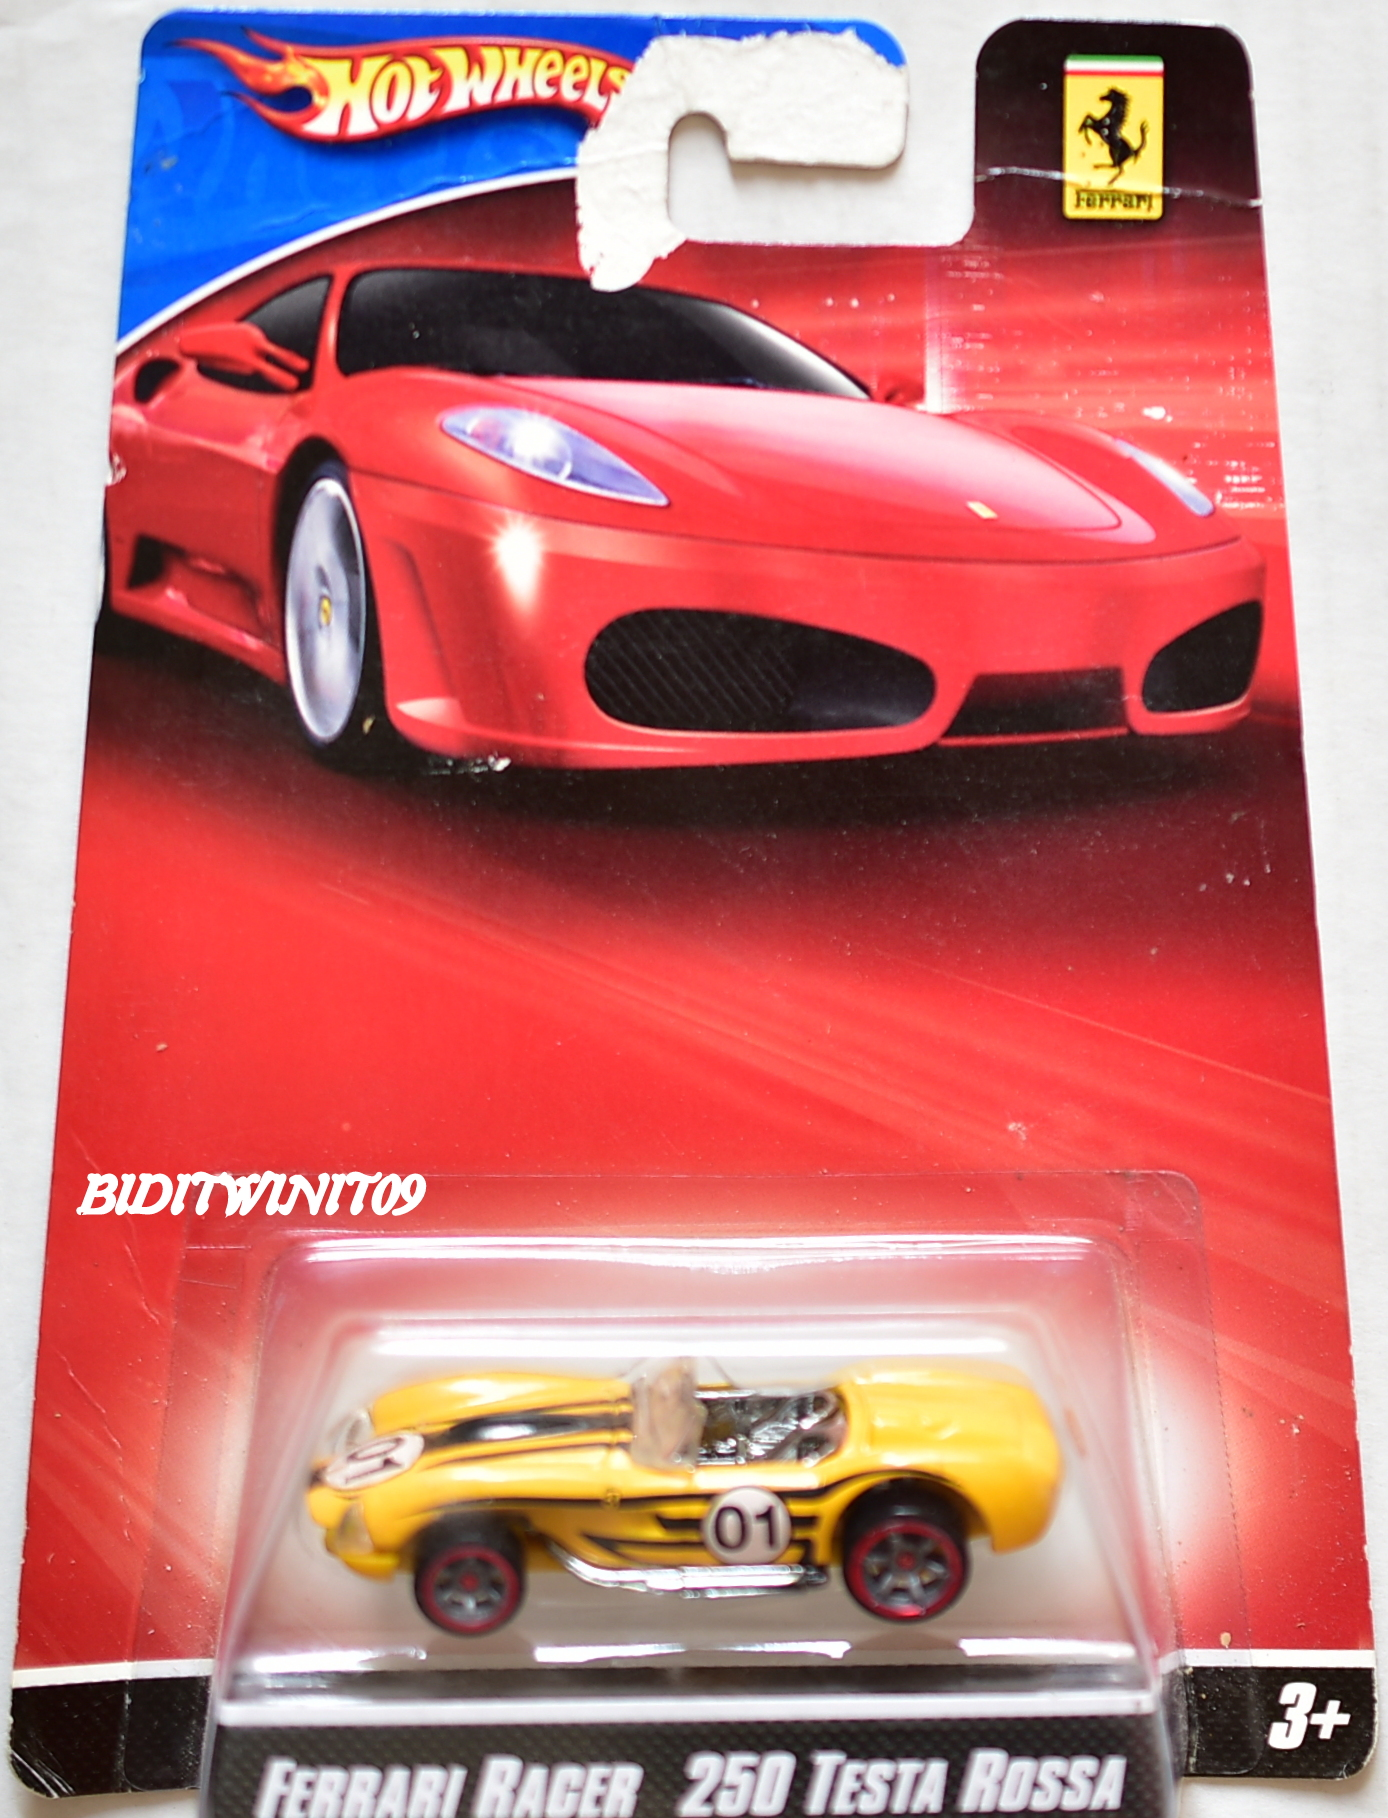 hot wheels ferrari racer 250 testa rossa yellow bad card. Black Bedroom Furniture Sets. Home Design Ideas